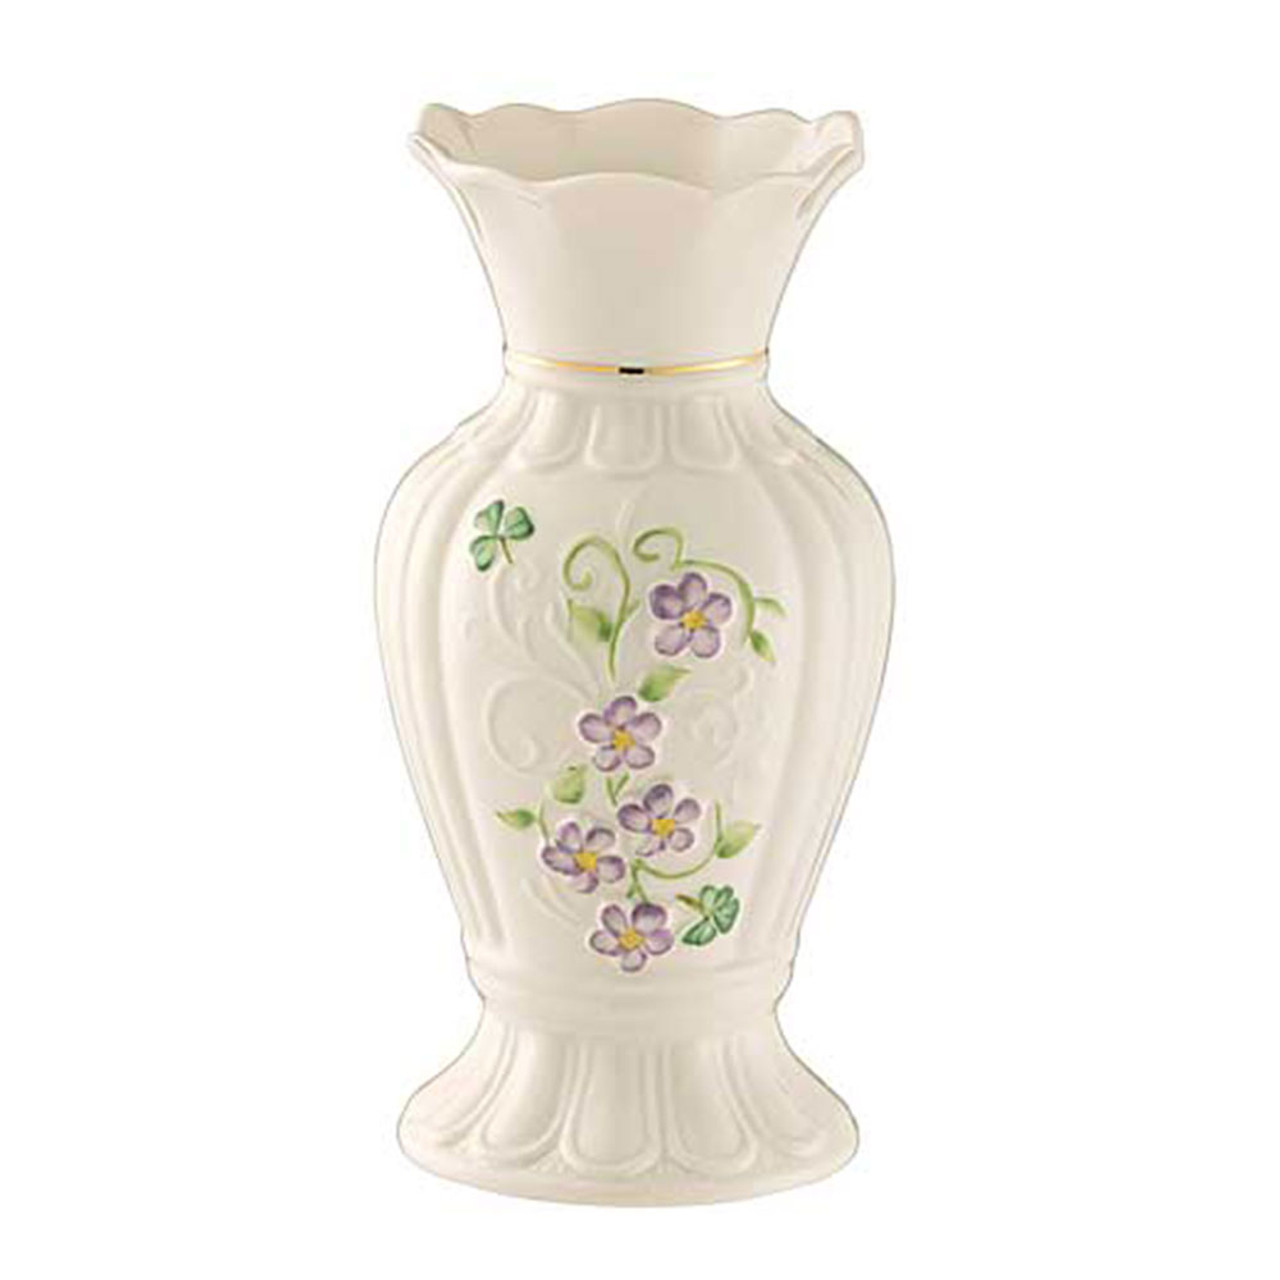 "Irish Flax Vase 7"" by Belleek"